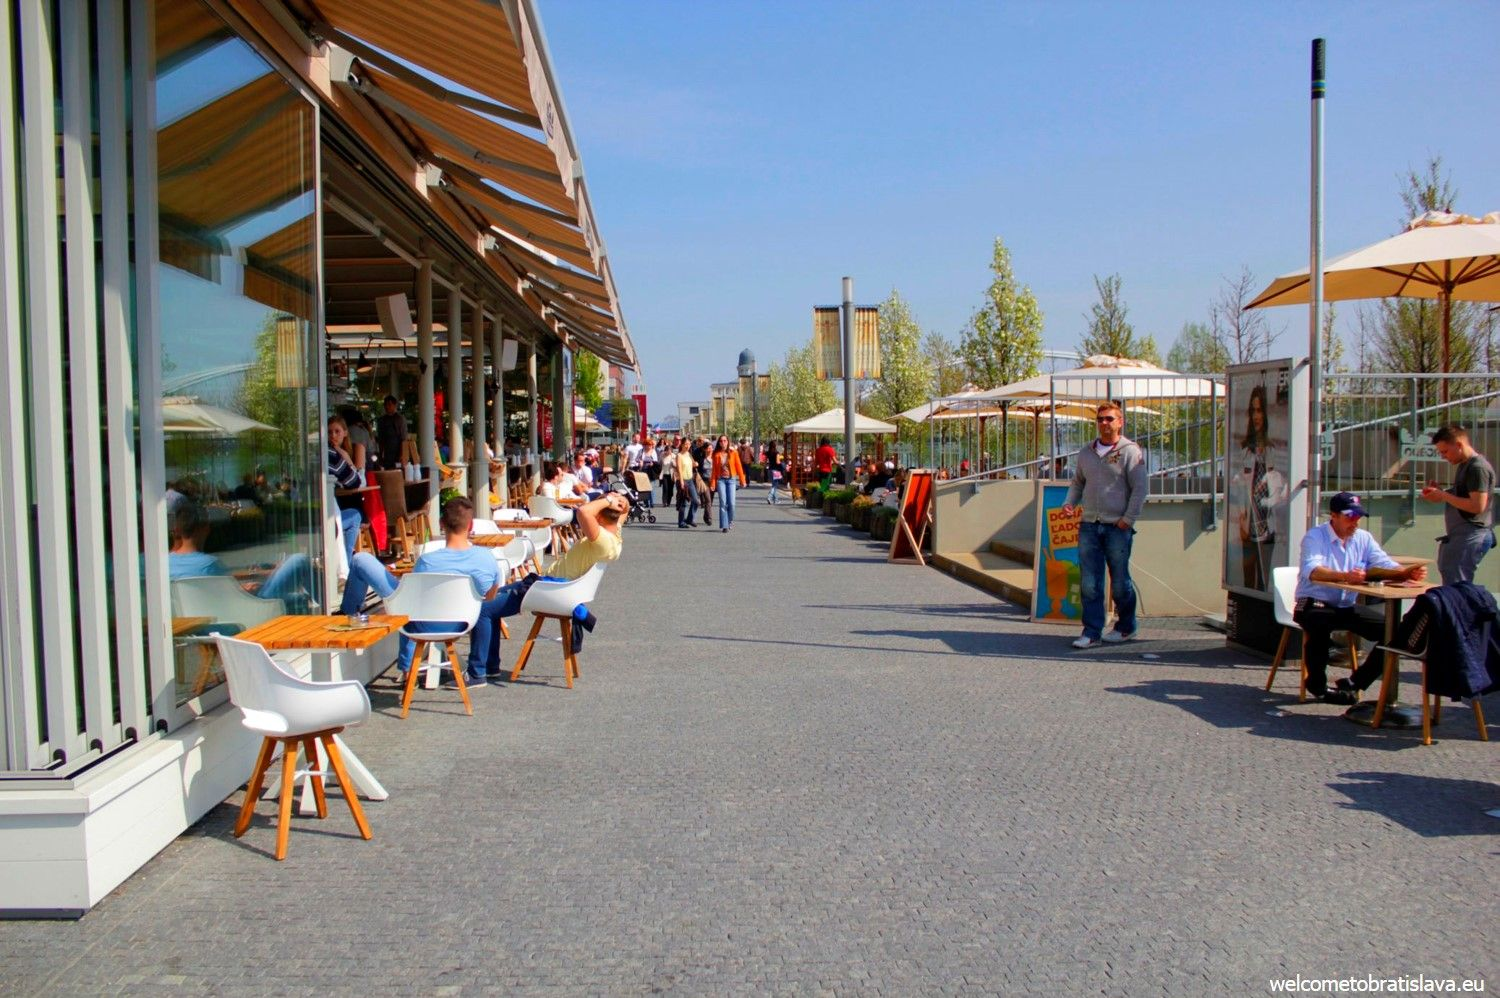 Mercado is located at the Danube bank